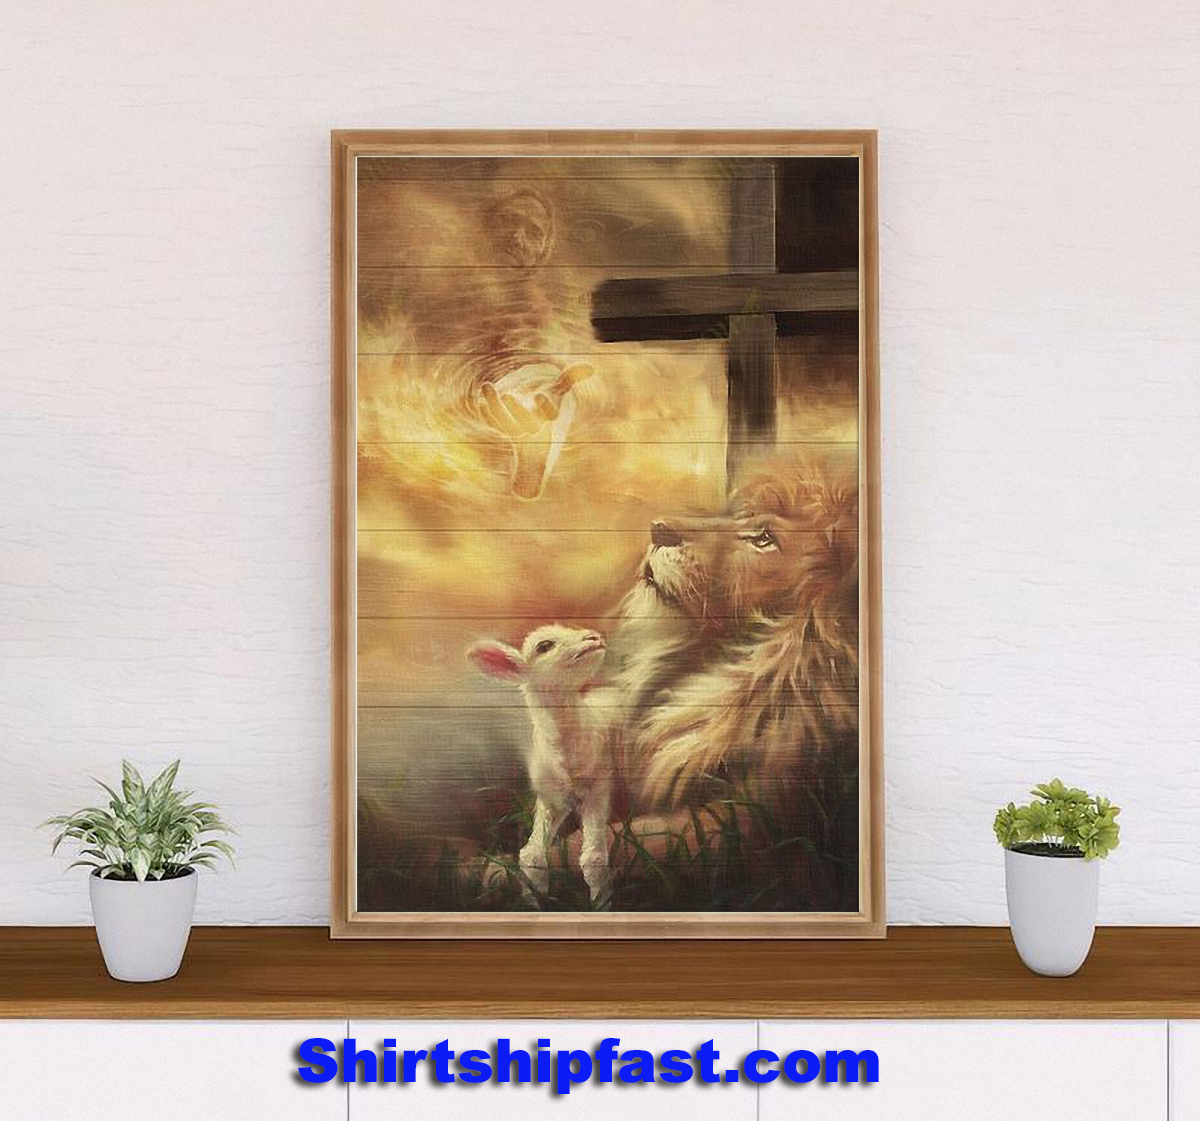 Jesus beautiful lion and lamb canvas - Picture 2